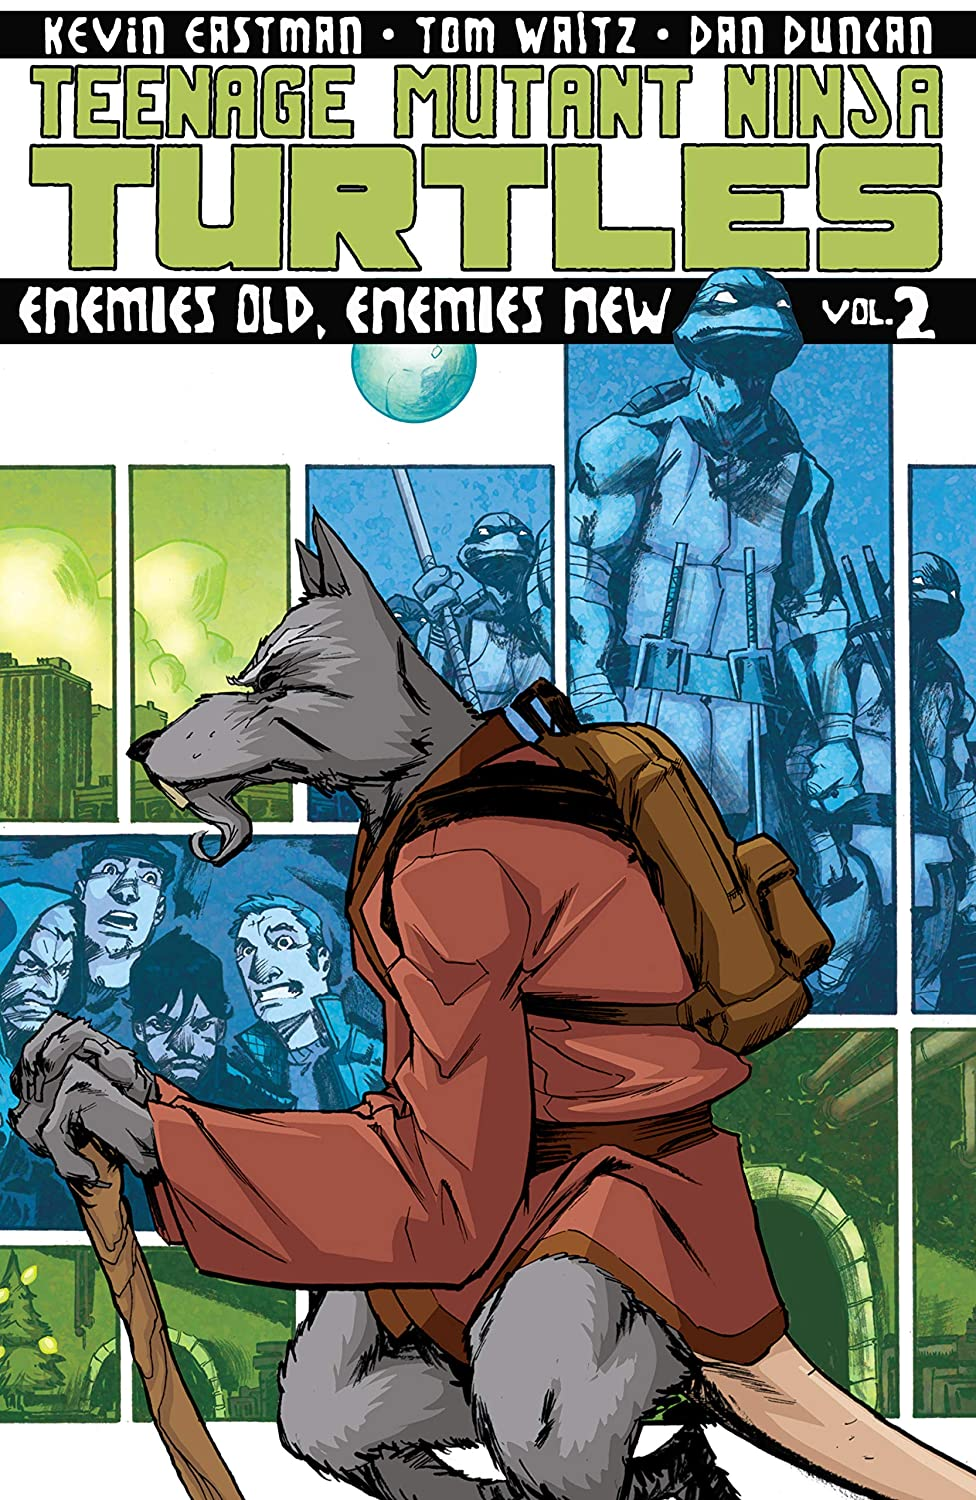 Teenage Mutant Ninja Turtles Vol. 2: Enemies Old, Enemies ...